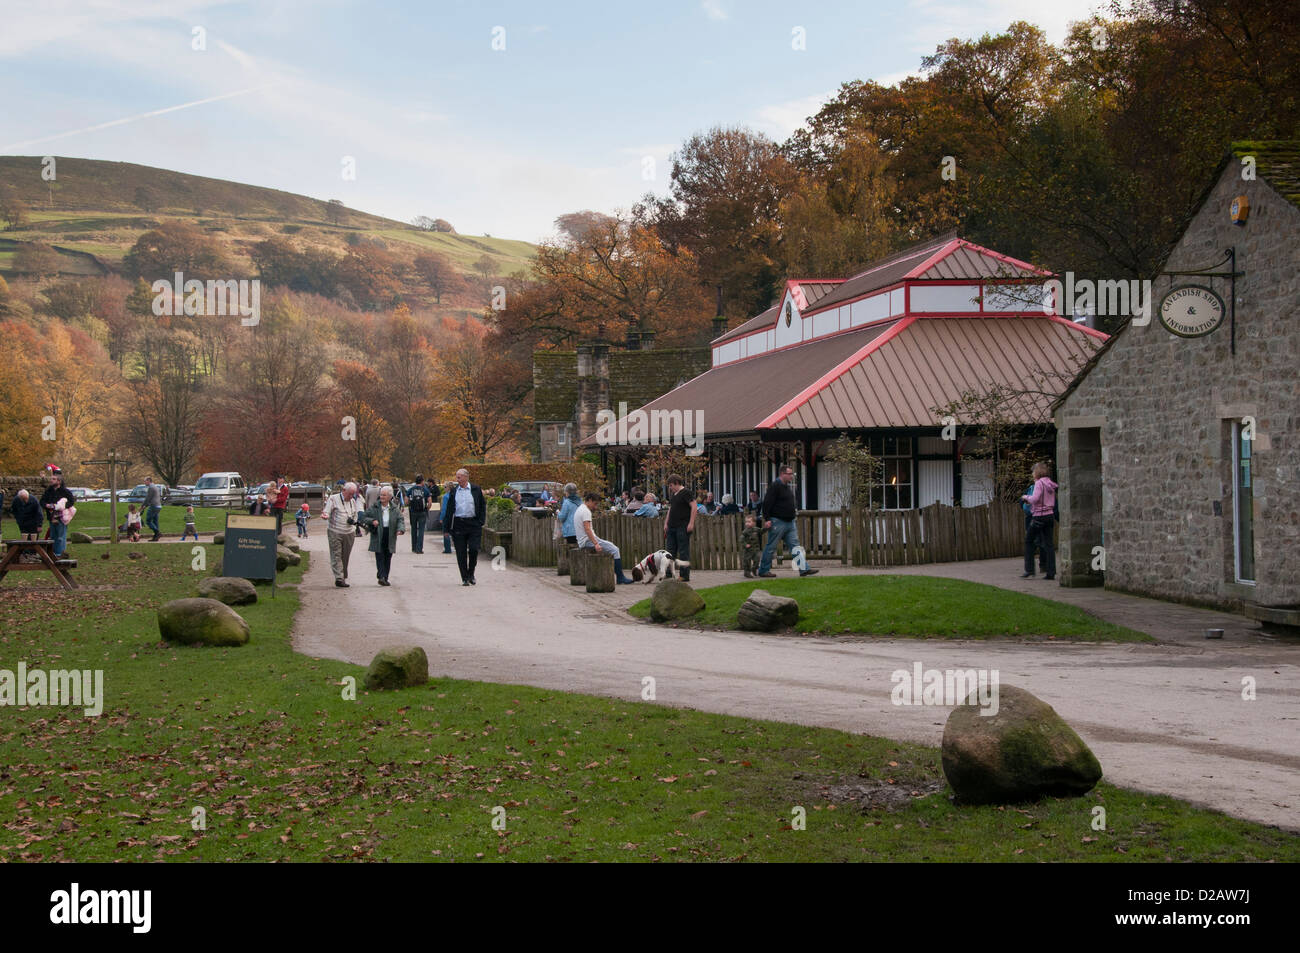 People of all ages (visitors) enjoying day out by scenic countryside cafe (Cavendish Pavilion) - Bolton Abbey Estate, - Stock Image